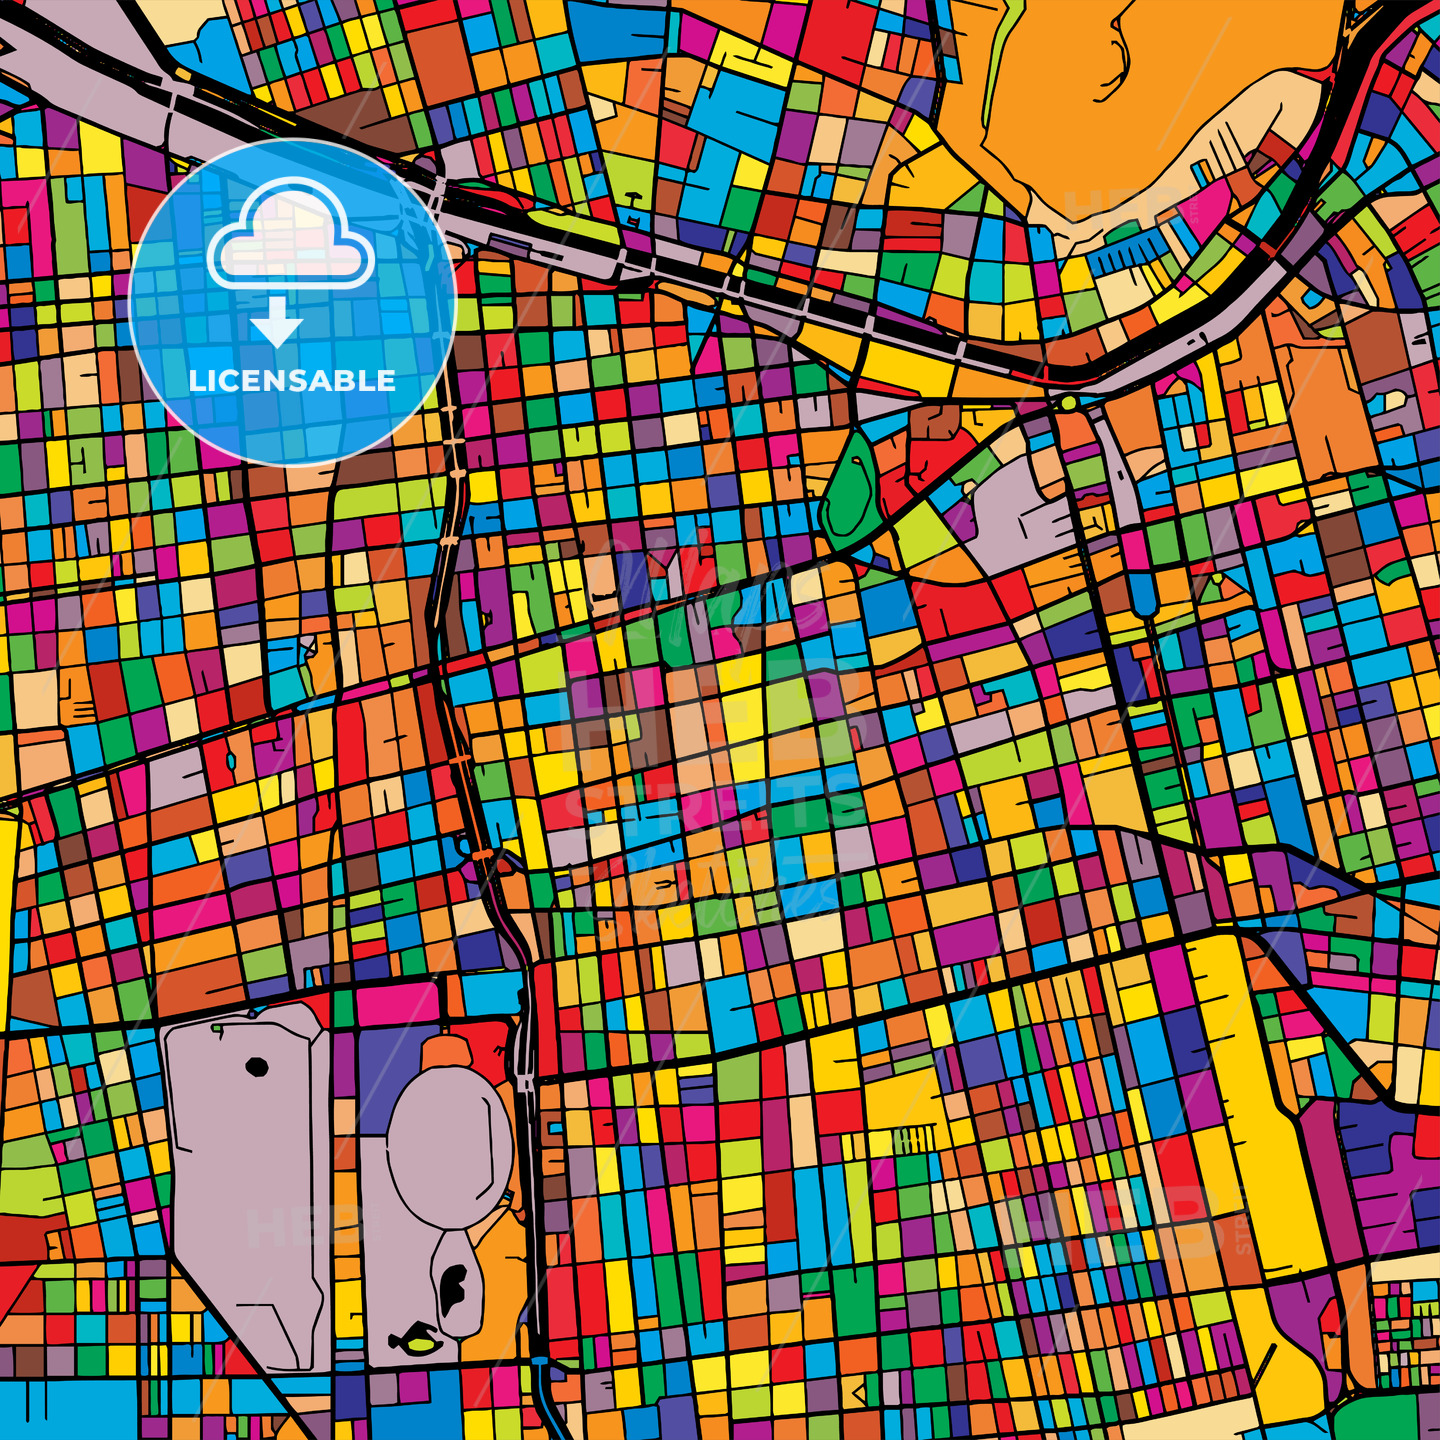 Santiago Colorful Map on Black - HEBSTREIT's Sketches